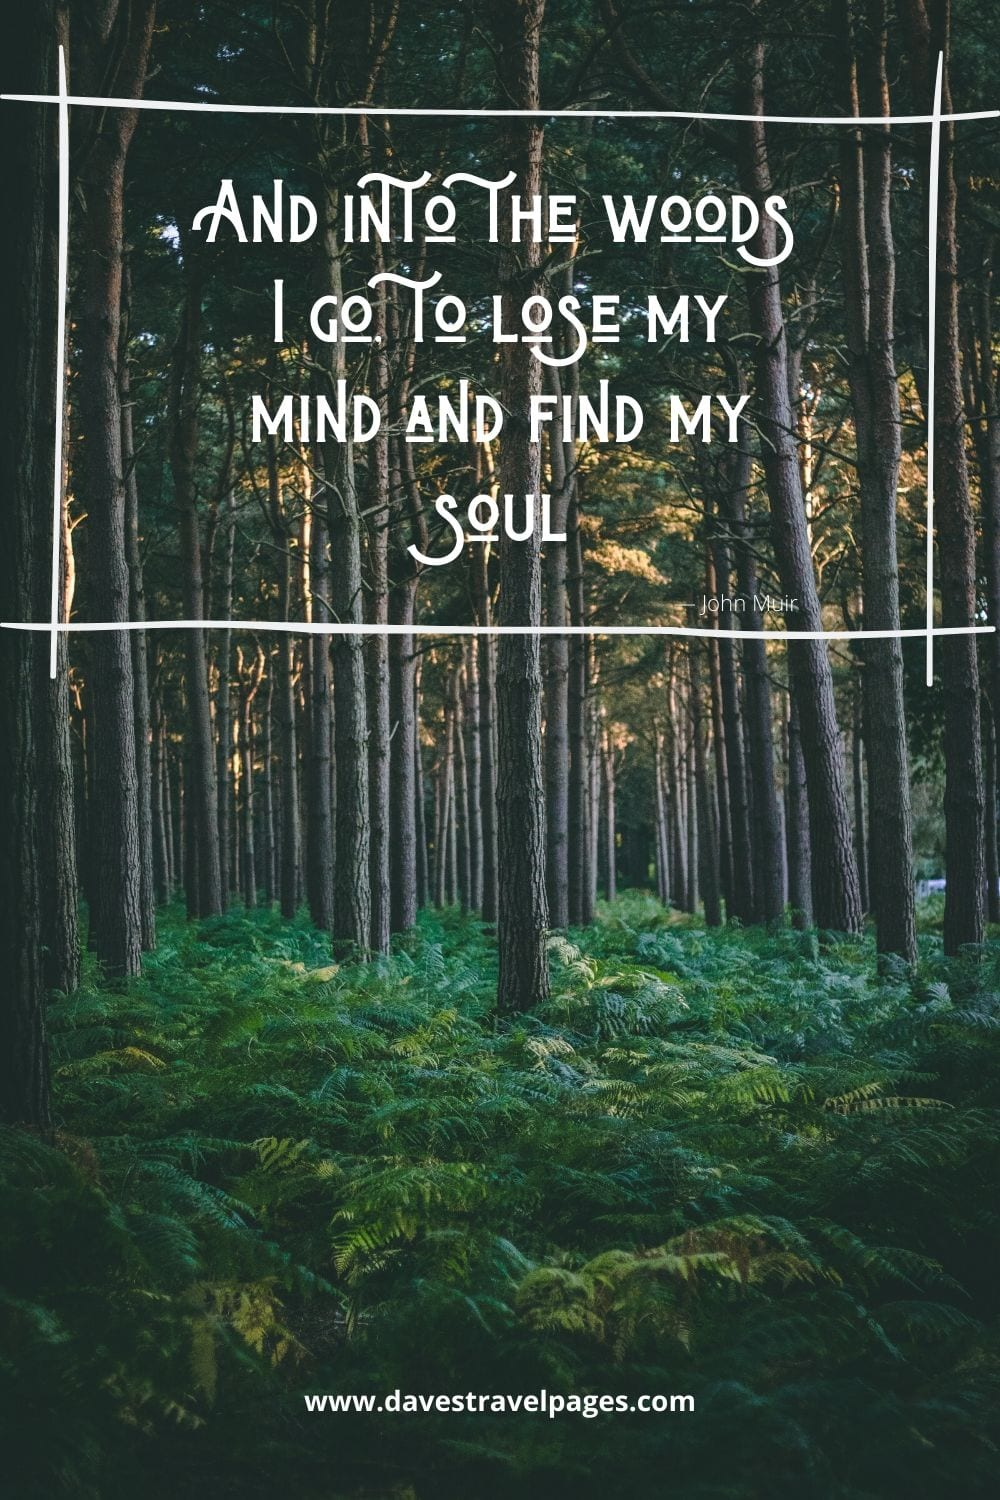 """Famous John Muir Quotes: """"And into the woods I go, to lose my mind and find my soul.""""― John Muir"""